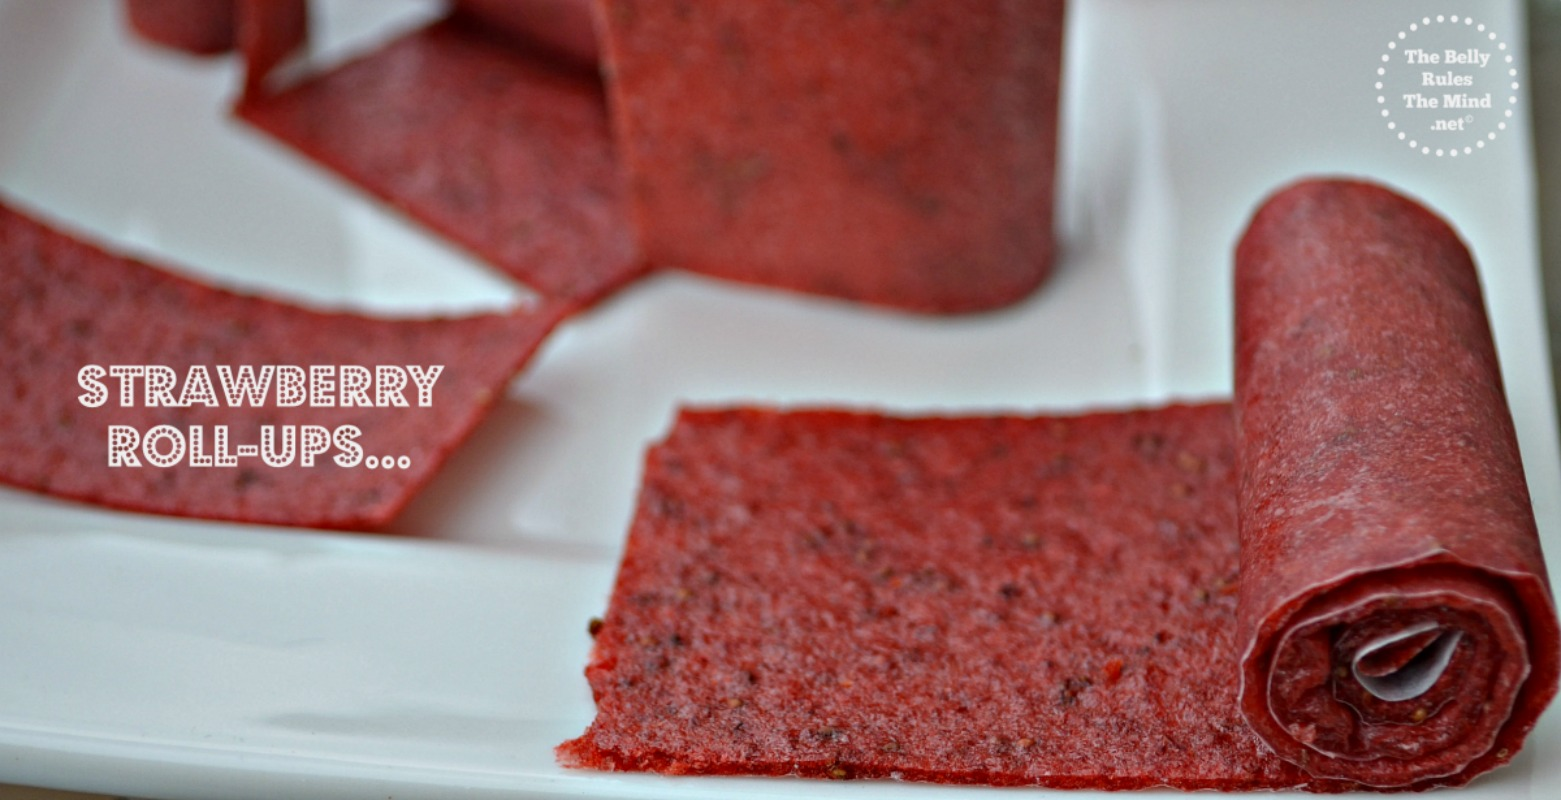 Strawberry Leather /roll-ups